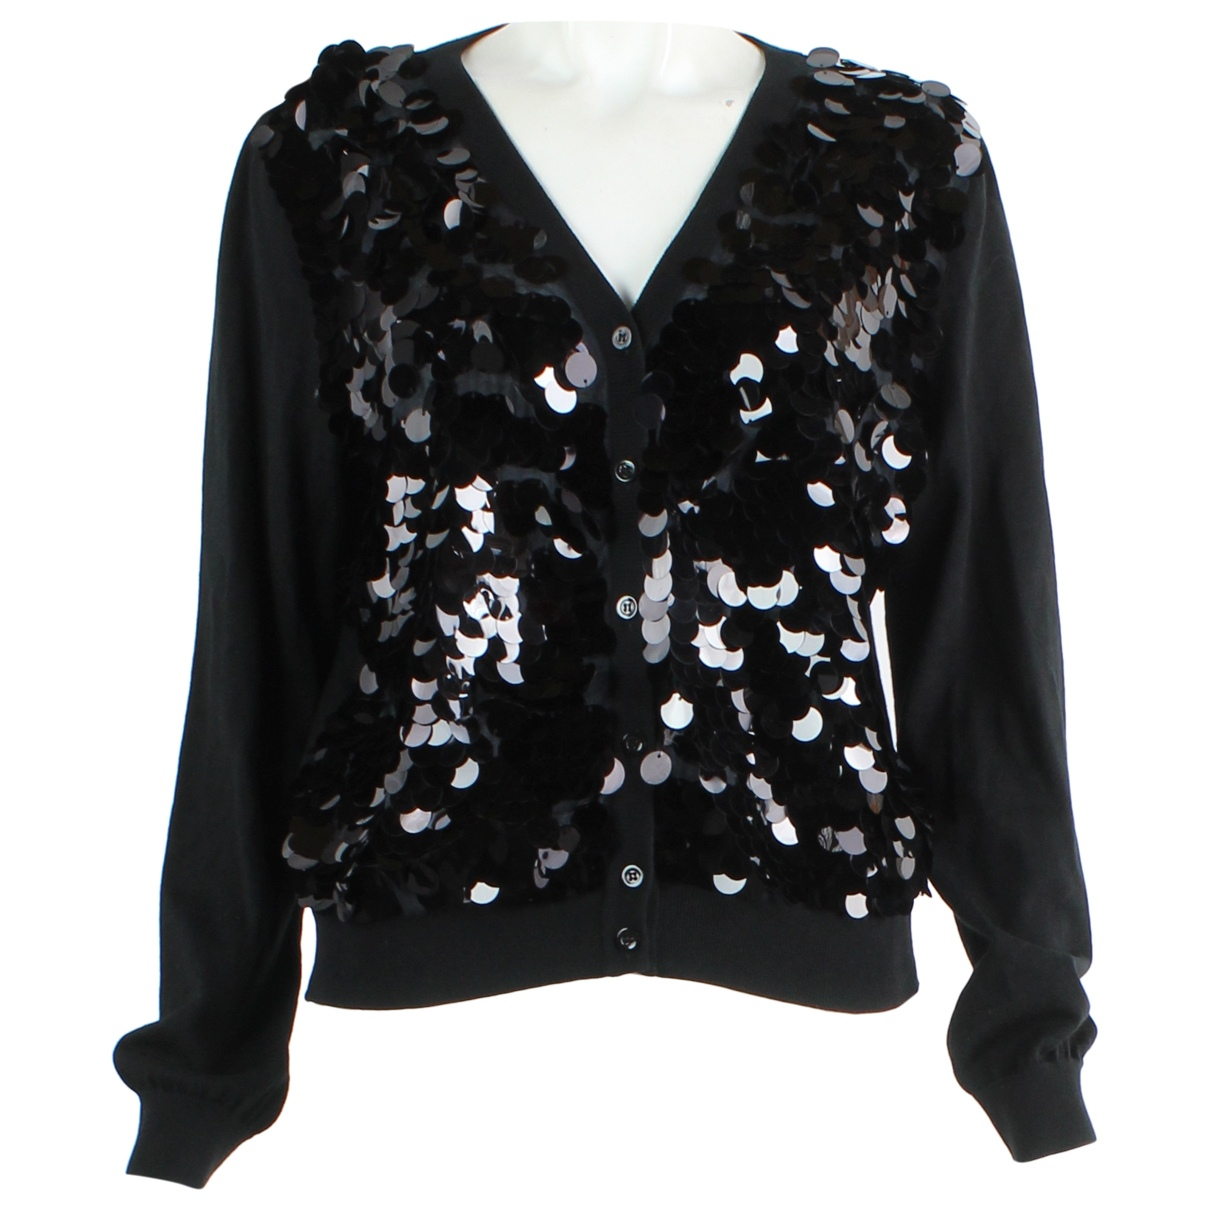 Moschino Cheap And Chic \N Black Cotton jacket for Women L International